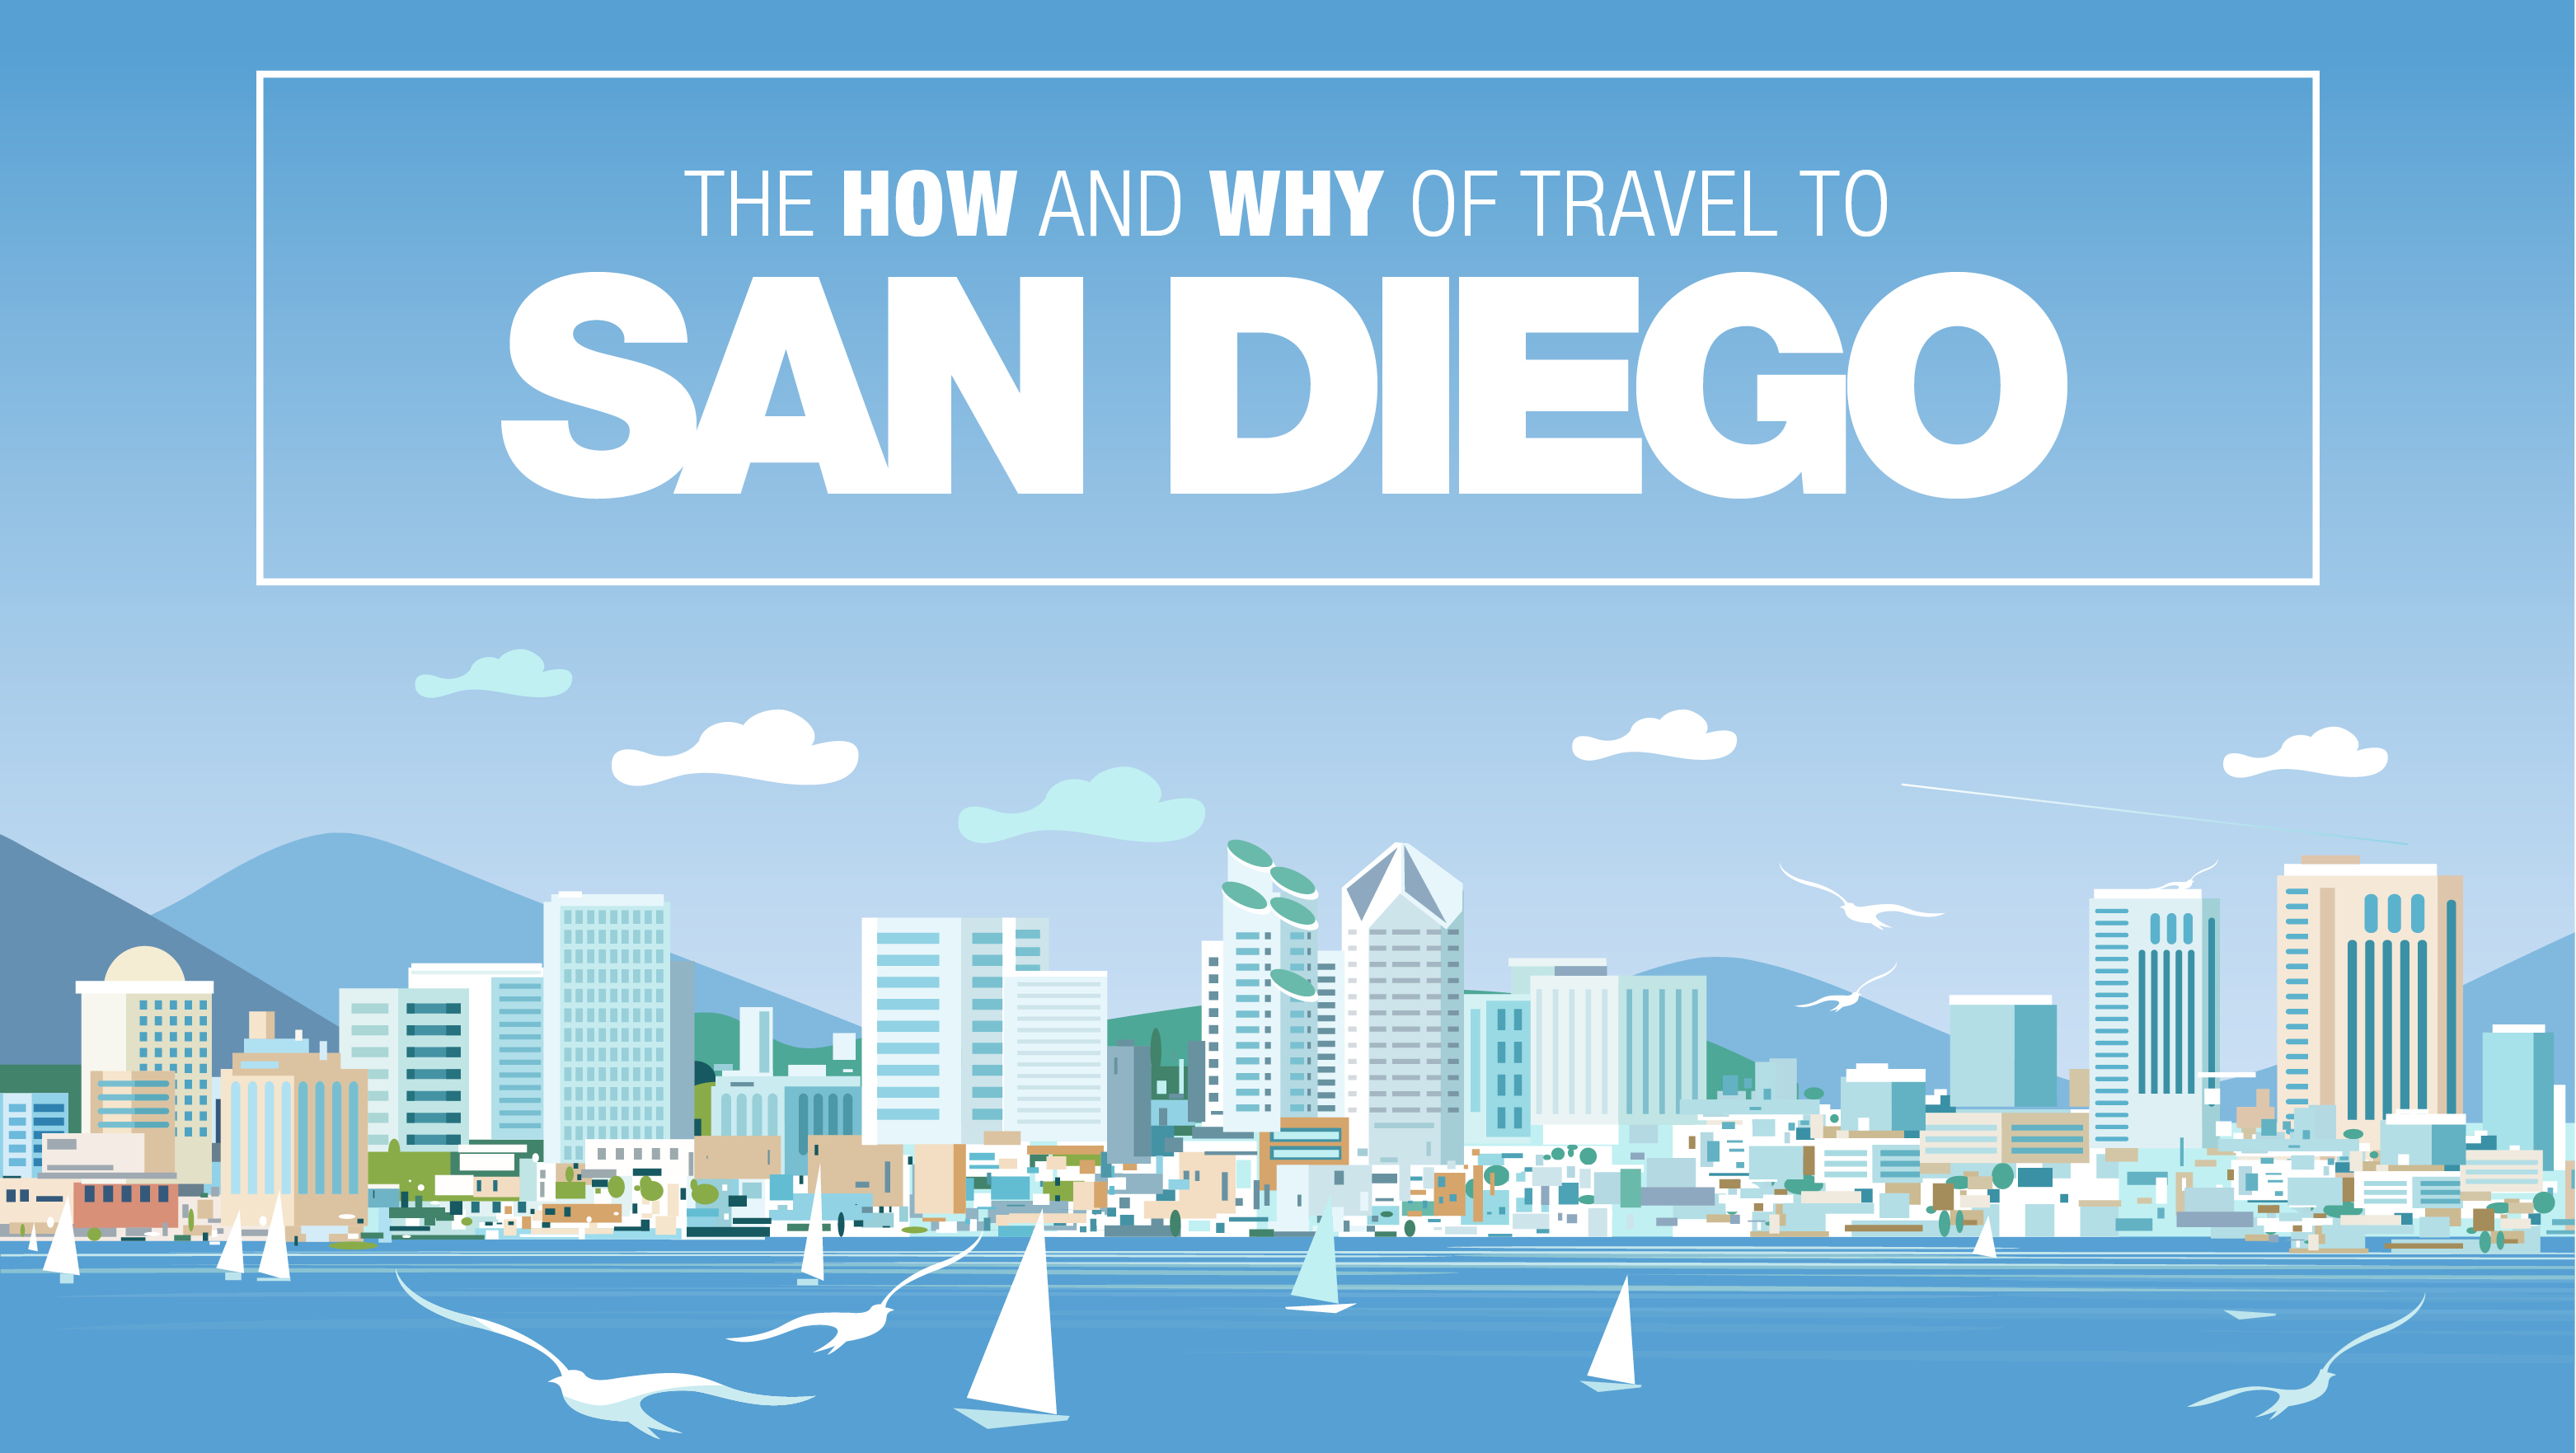 """""""The How and Why of Travel to San Diego"""" with San Diego skyline graphic"""